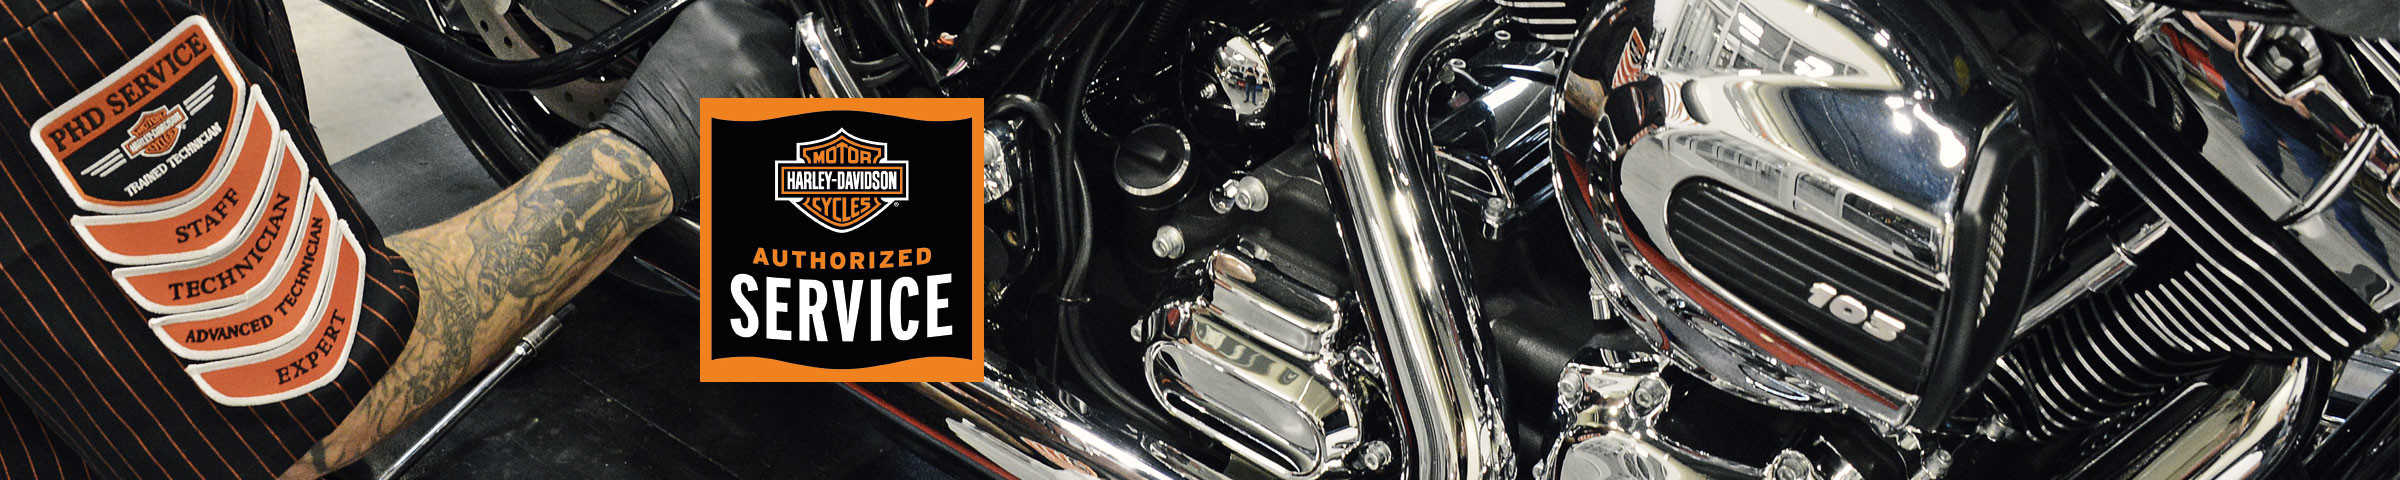 Motorcycle Service & Repair in Quincy, IL